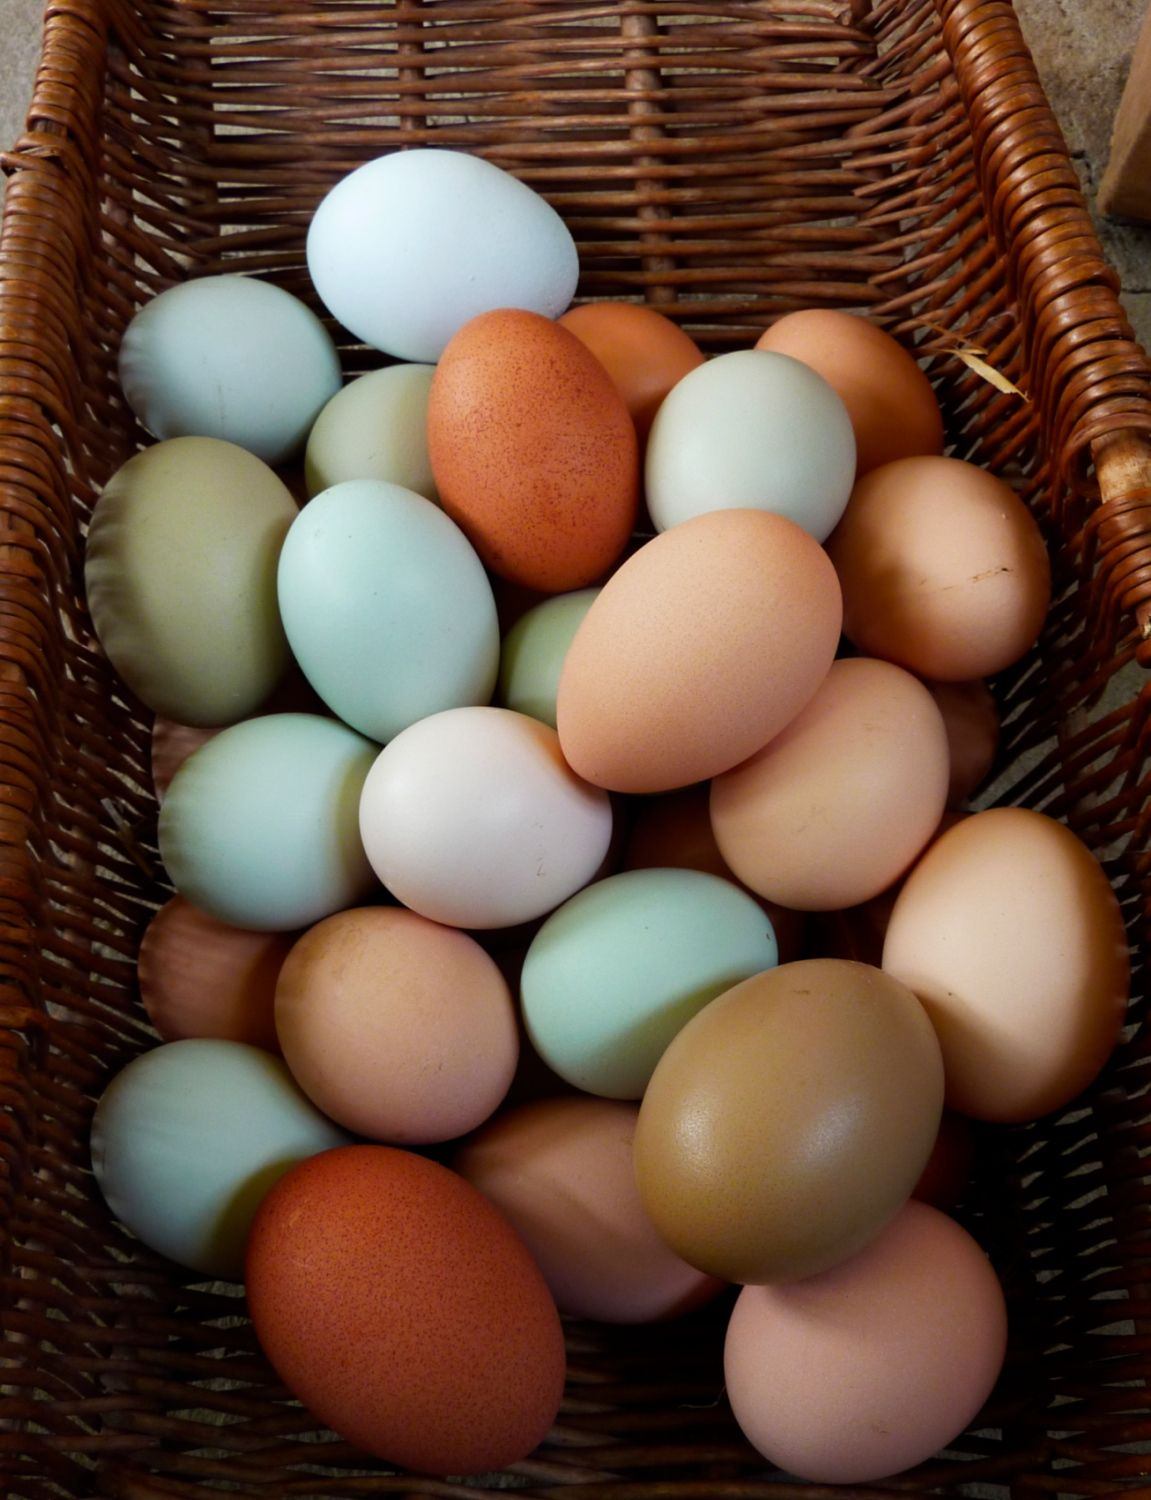 Chicken breeds for eggs - Chicken Breeds Egg Layers Easter Egg Layer Chickens